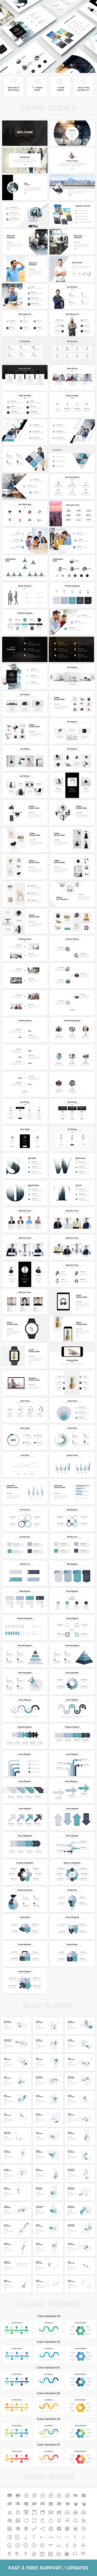 Efffective Business Keynote Template 2017 - Business Keynote Templates